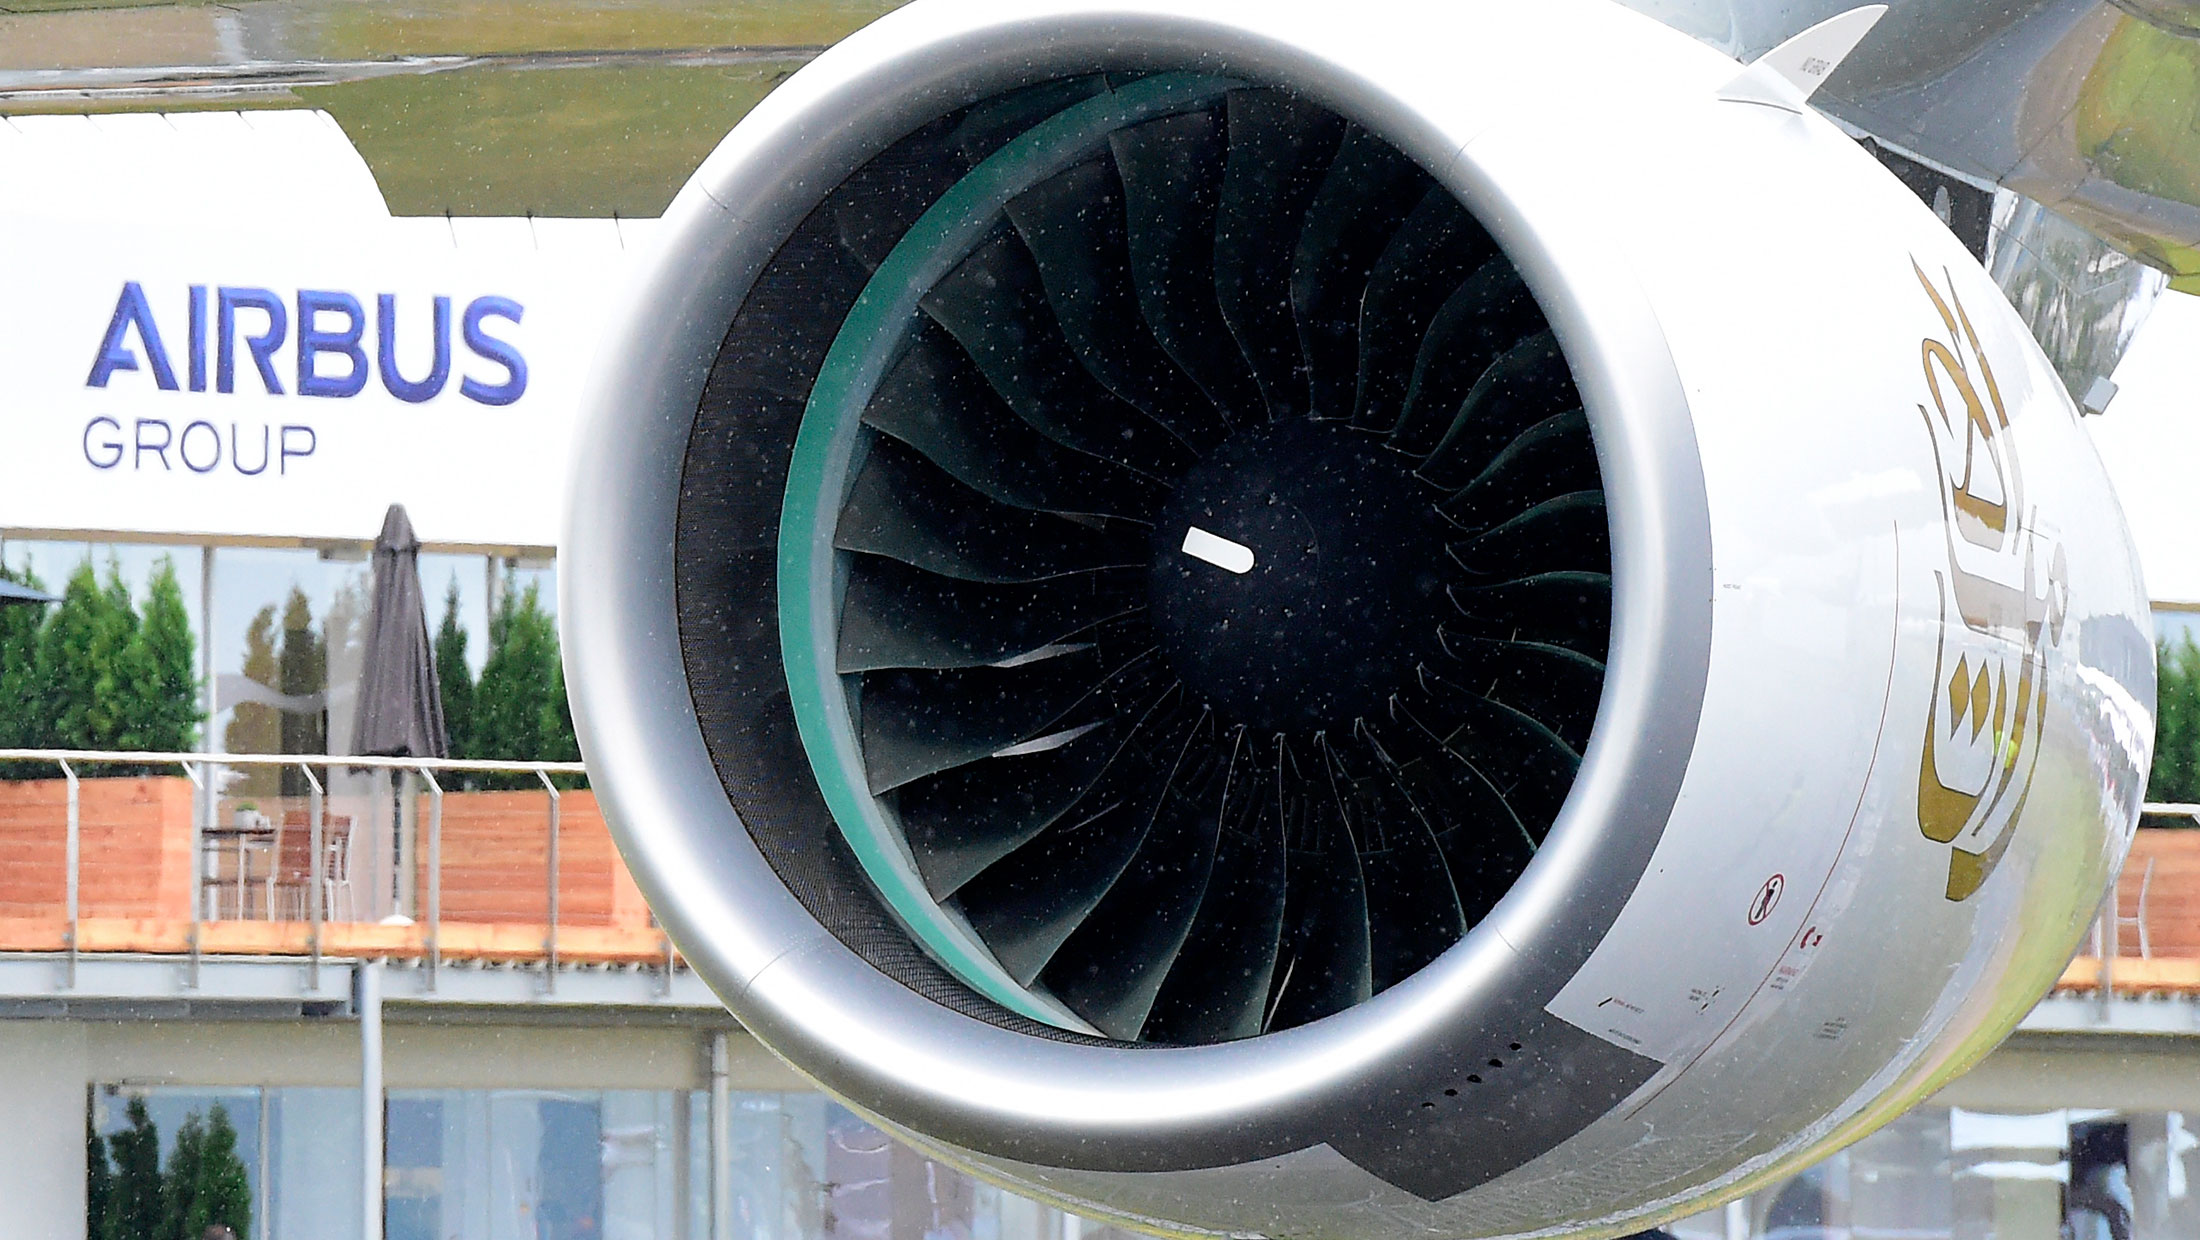 Emirates Says Rolls Royce s A380 Engines Not Up to Standard